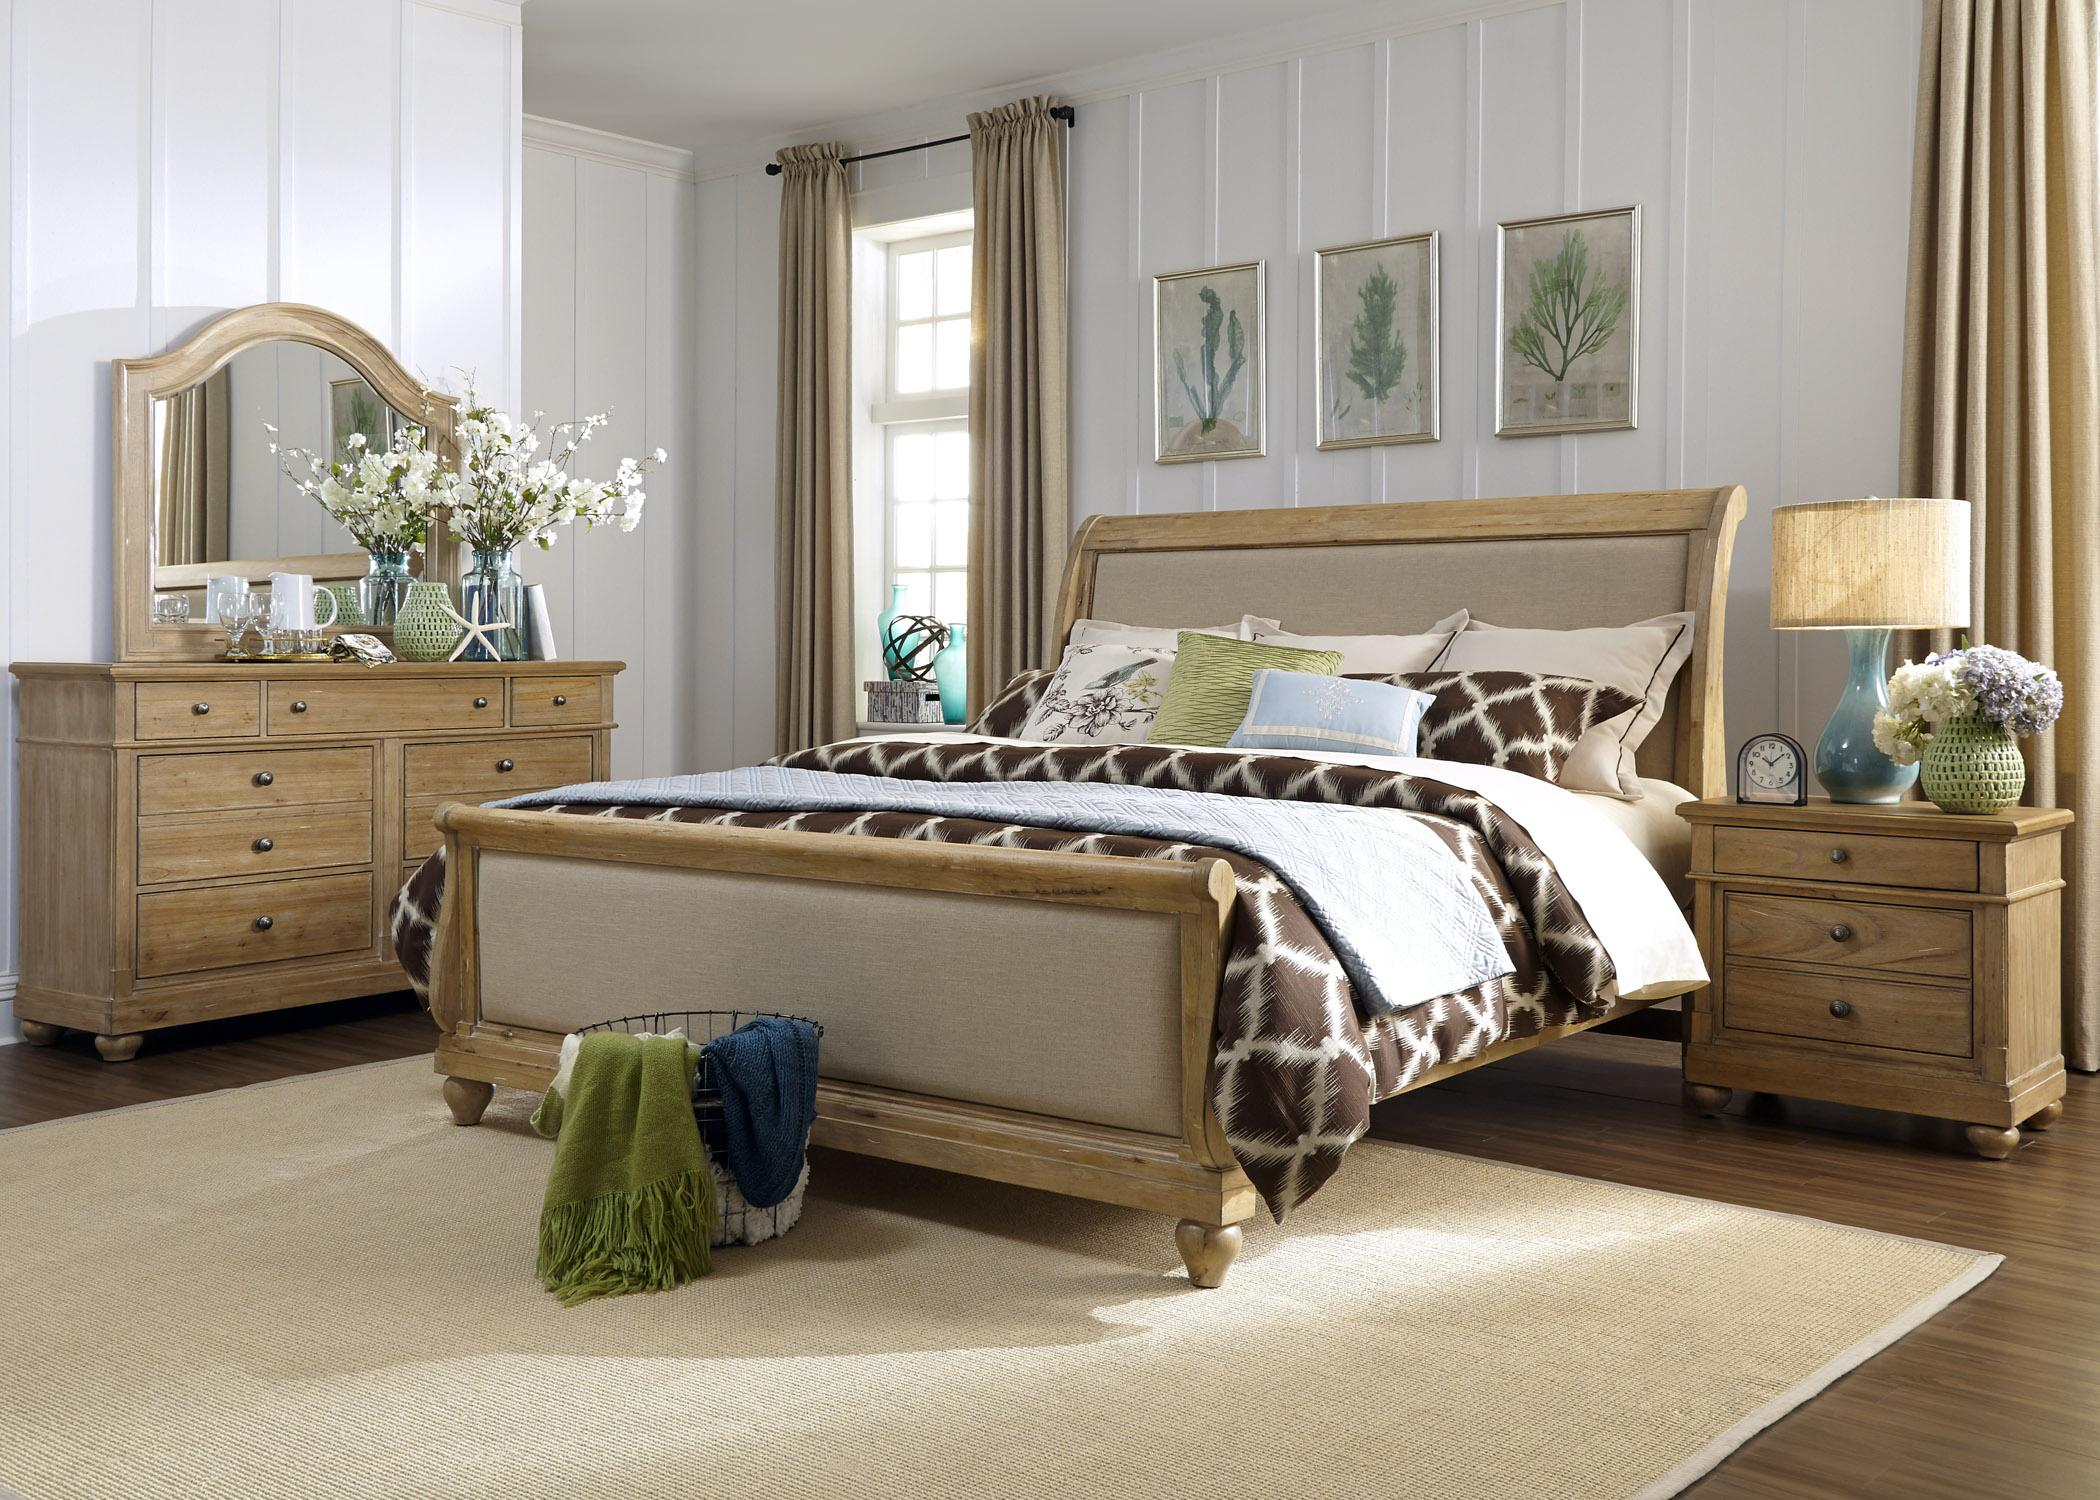 Liberty Furniture Harbor View Queen Bedroom Group - Item Number: 531-BR-QSLDMN